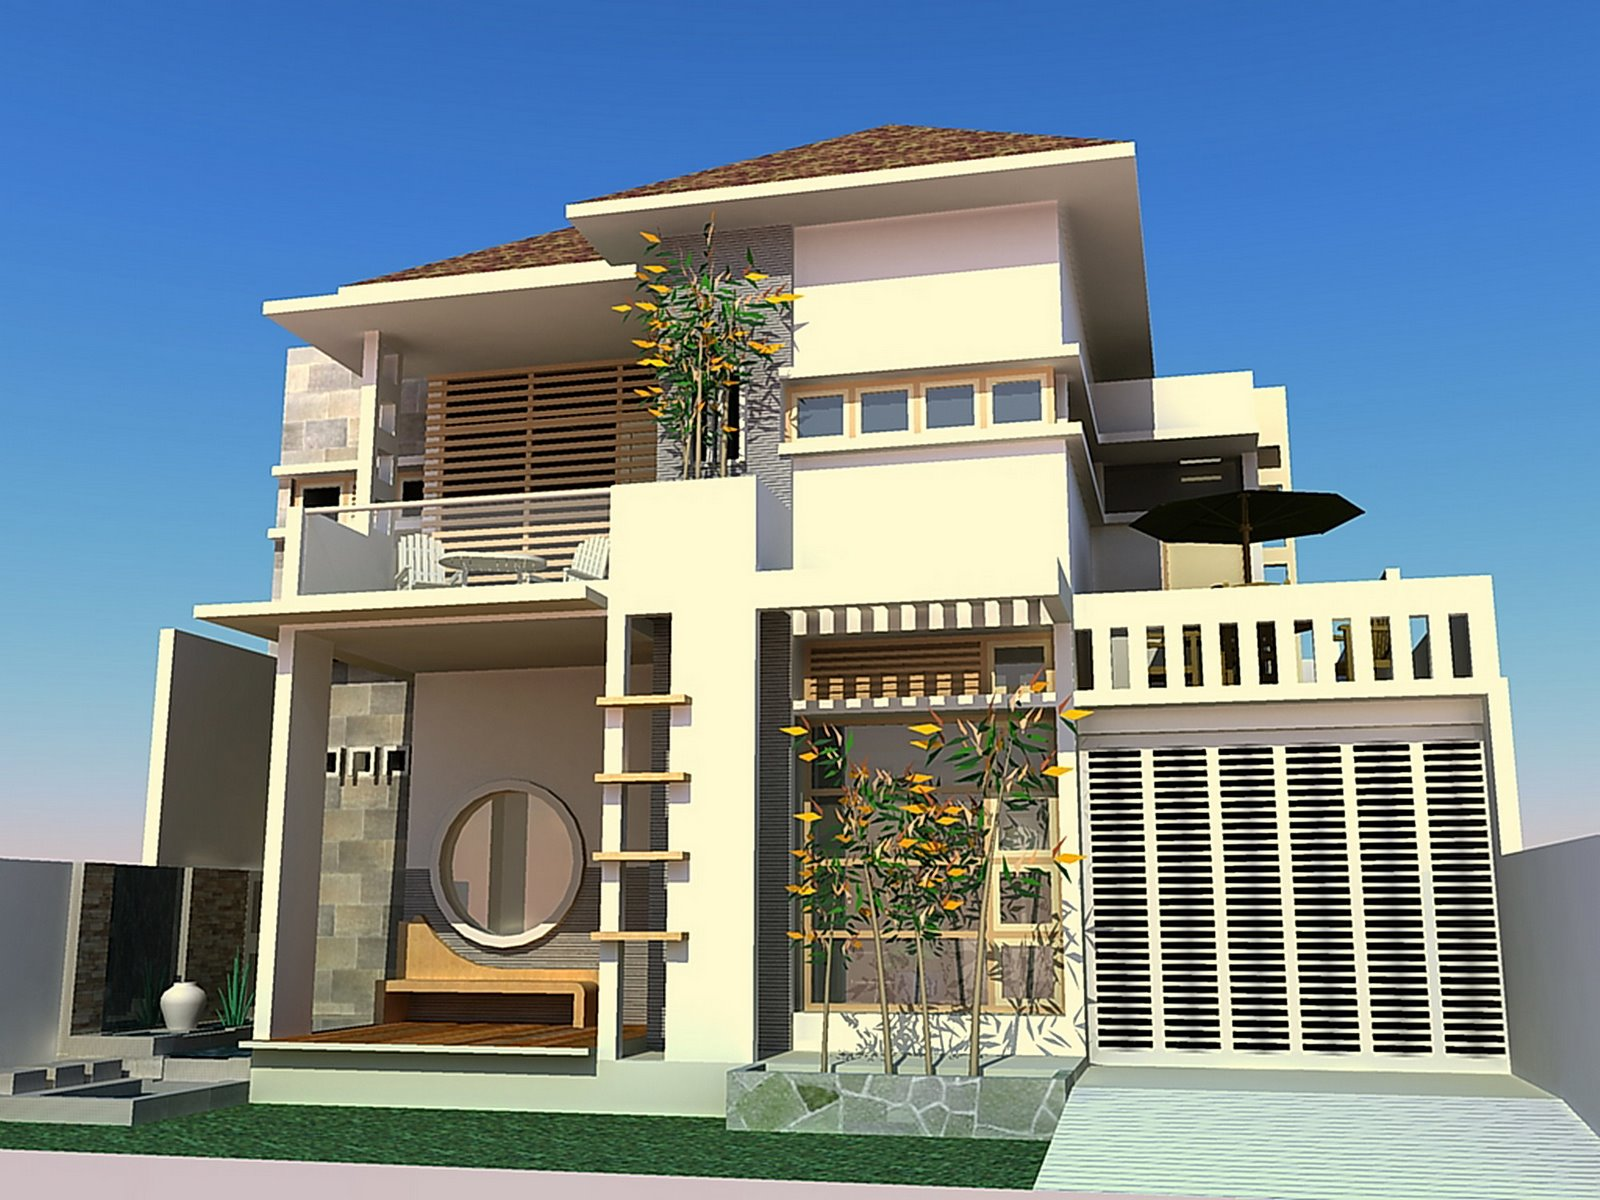 New home designs latest modern homes front designs florida for Design rumah mimimalis modern